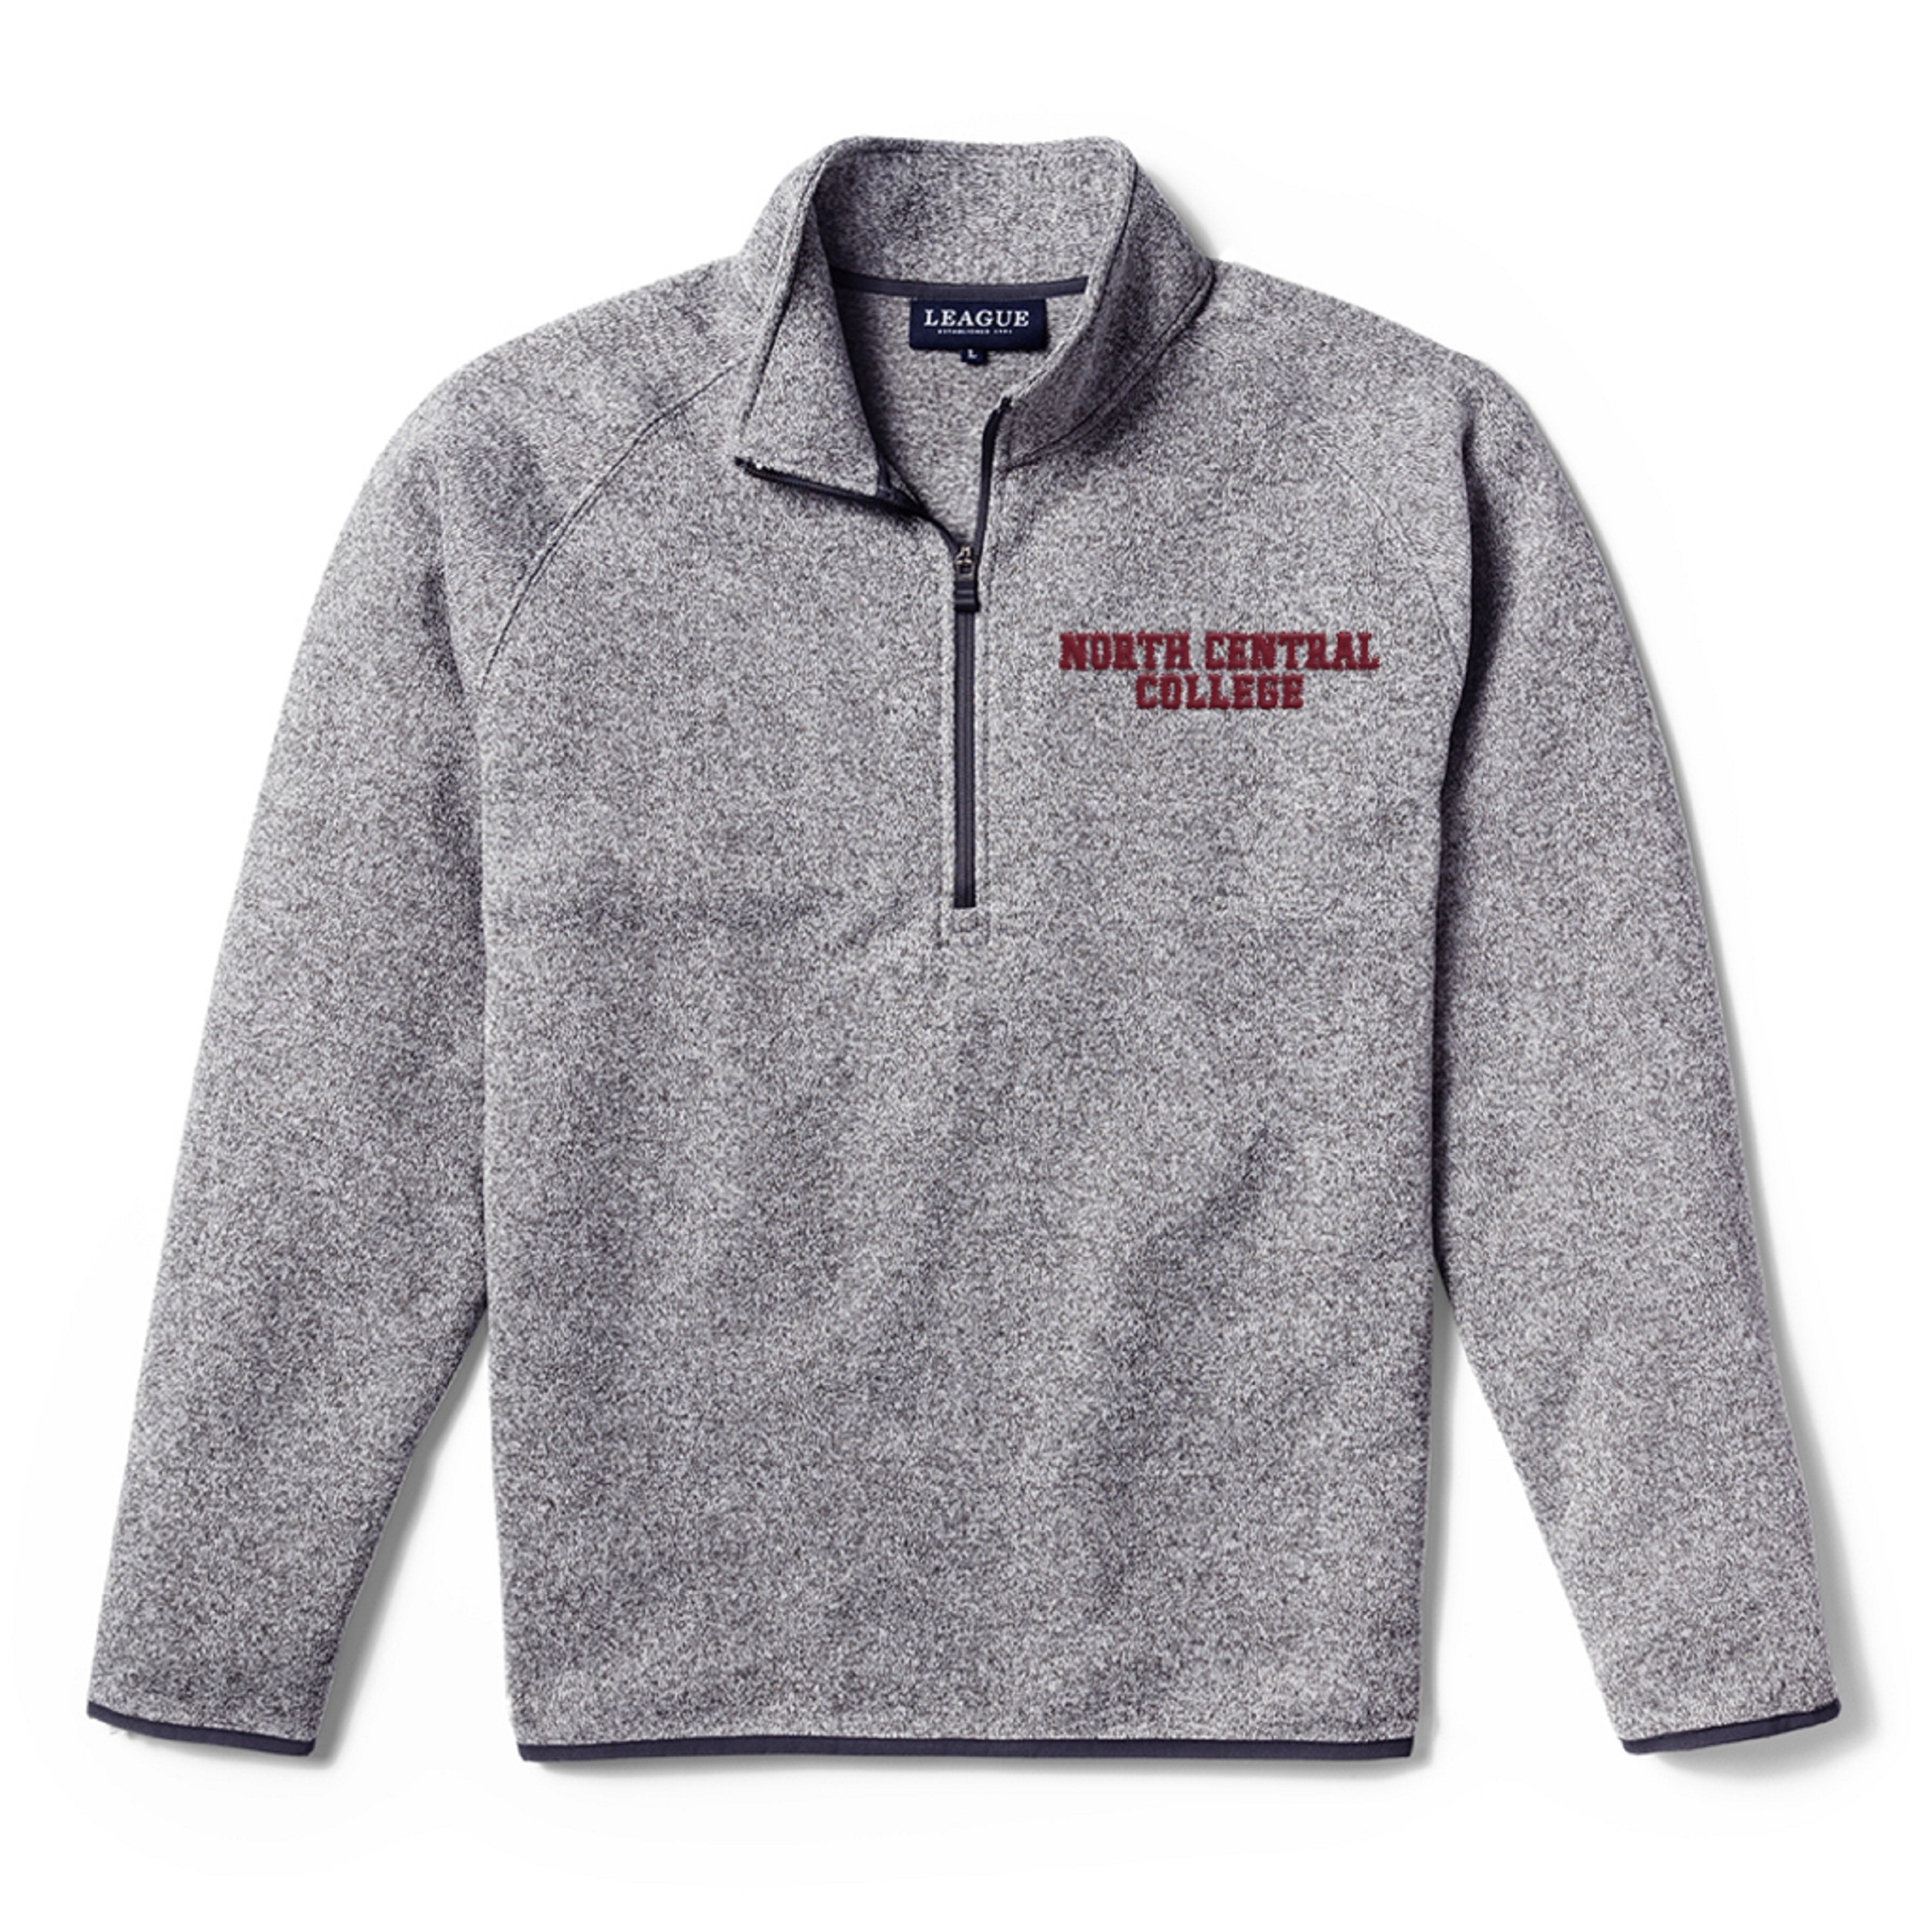 Image for the League Saranac 1/4 Zip product